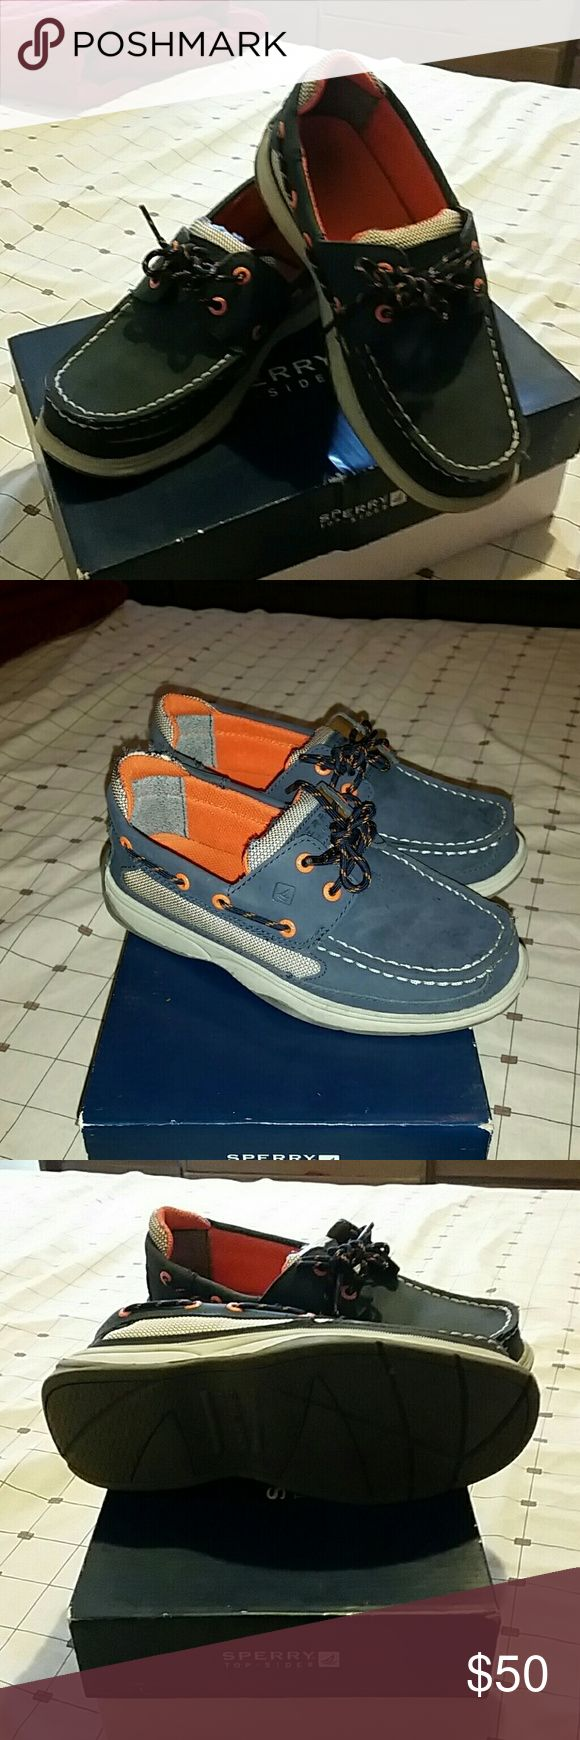 Boys Sperry Used in good condition only used 3 times Sperry Top-Sider Shoes Dress Shoes